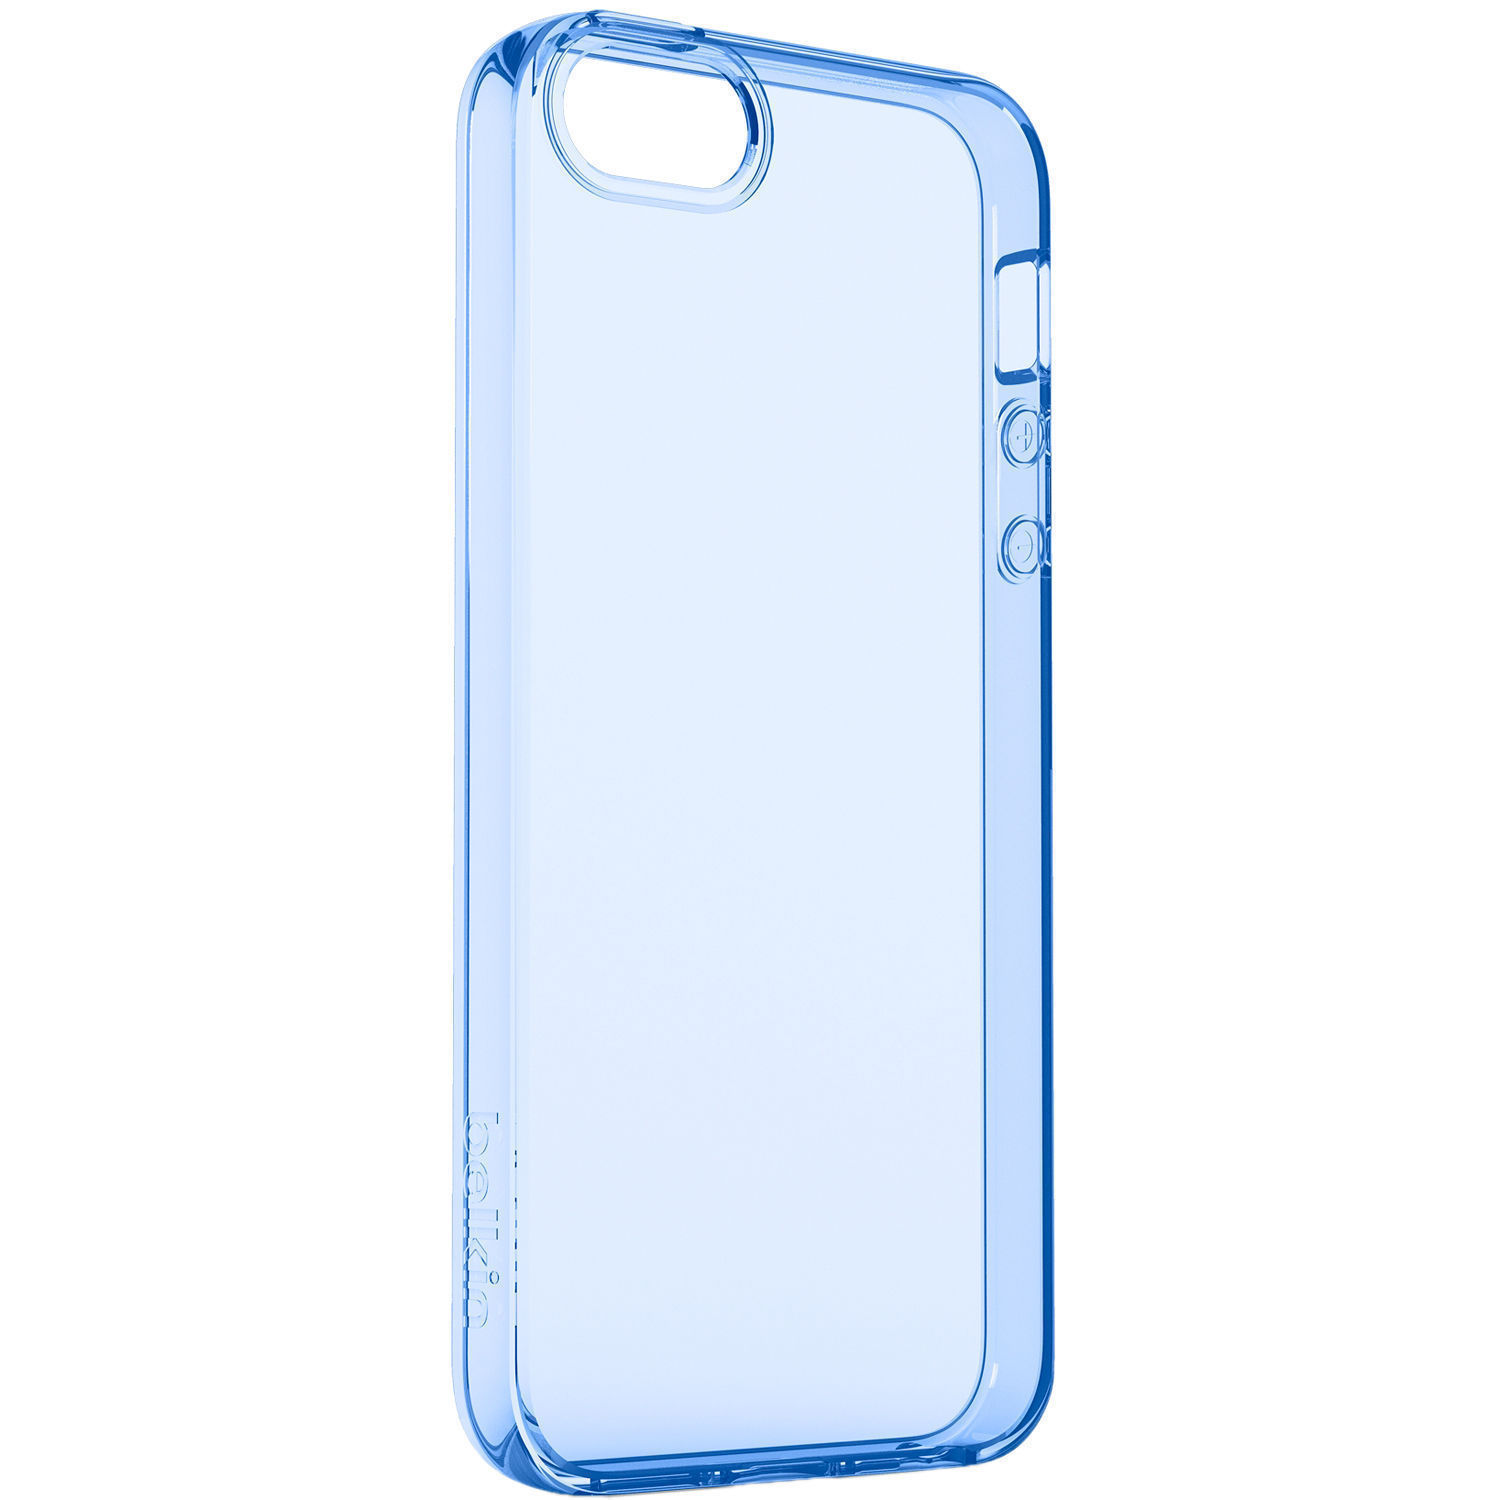 the latest 3ecf7 0cca8 Belkin Air Protect Clear Case for iPhone SE (Blue Sail)